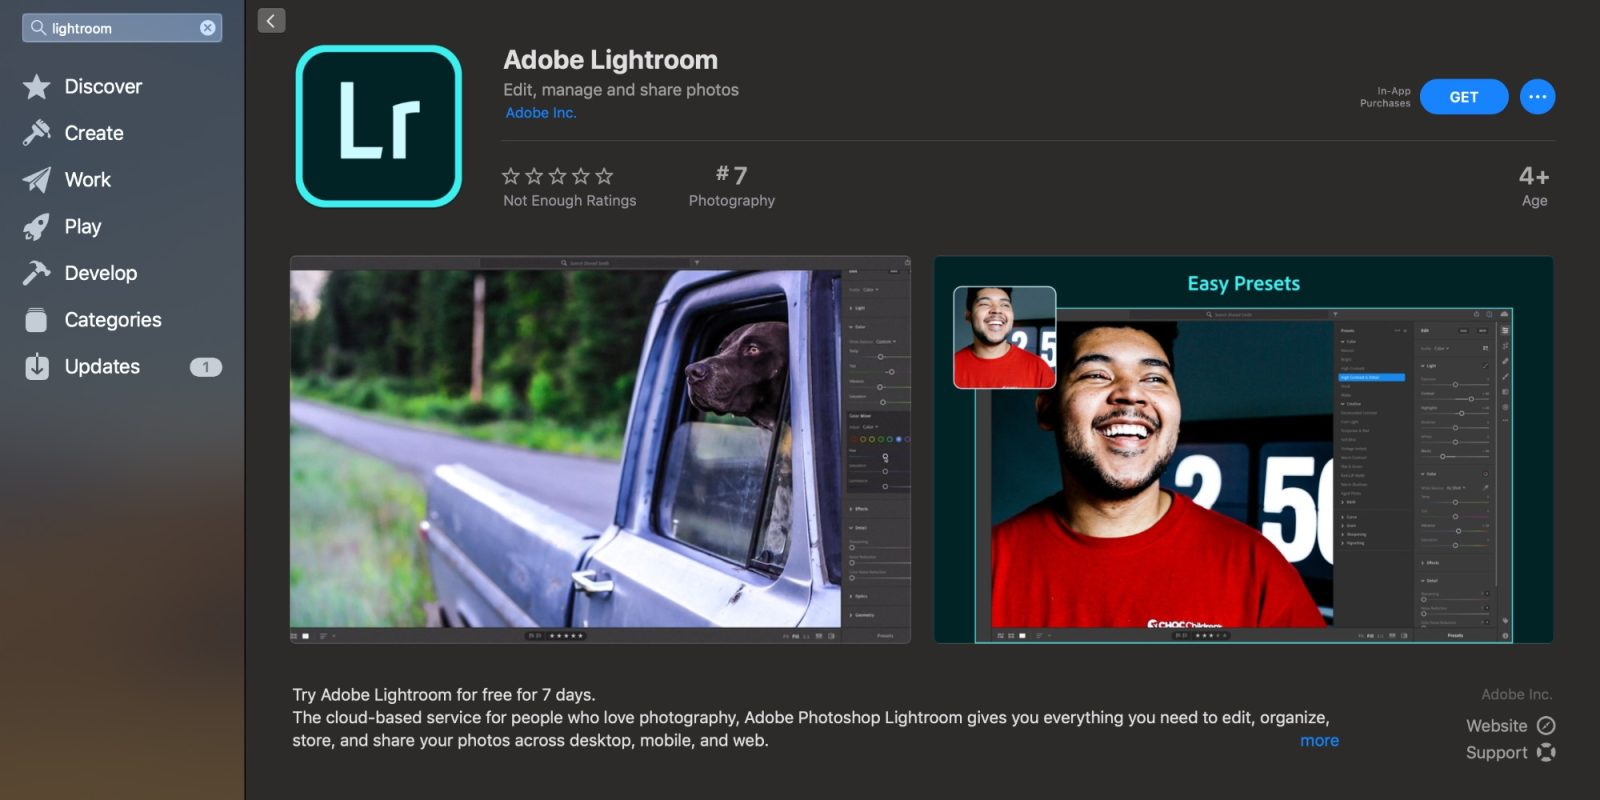 Lightroom for the Mac App Store is now available - 9to5Mac